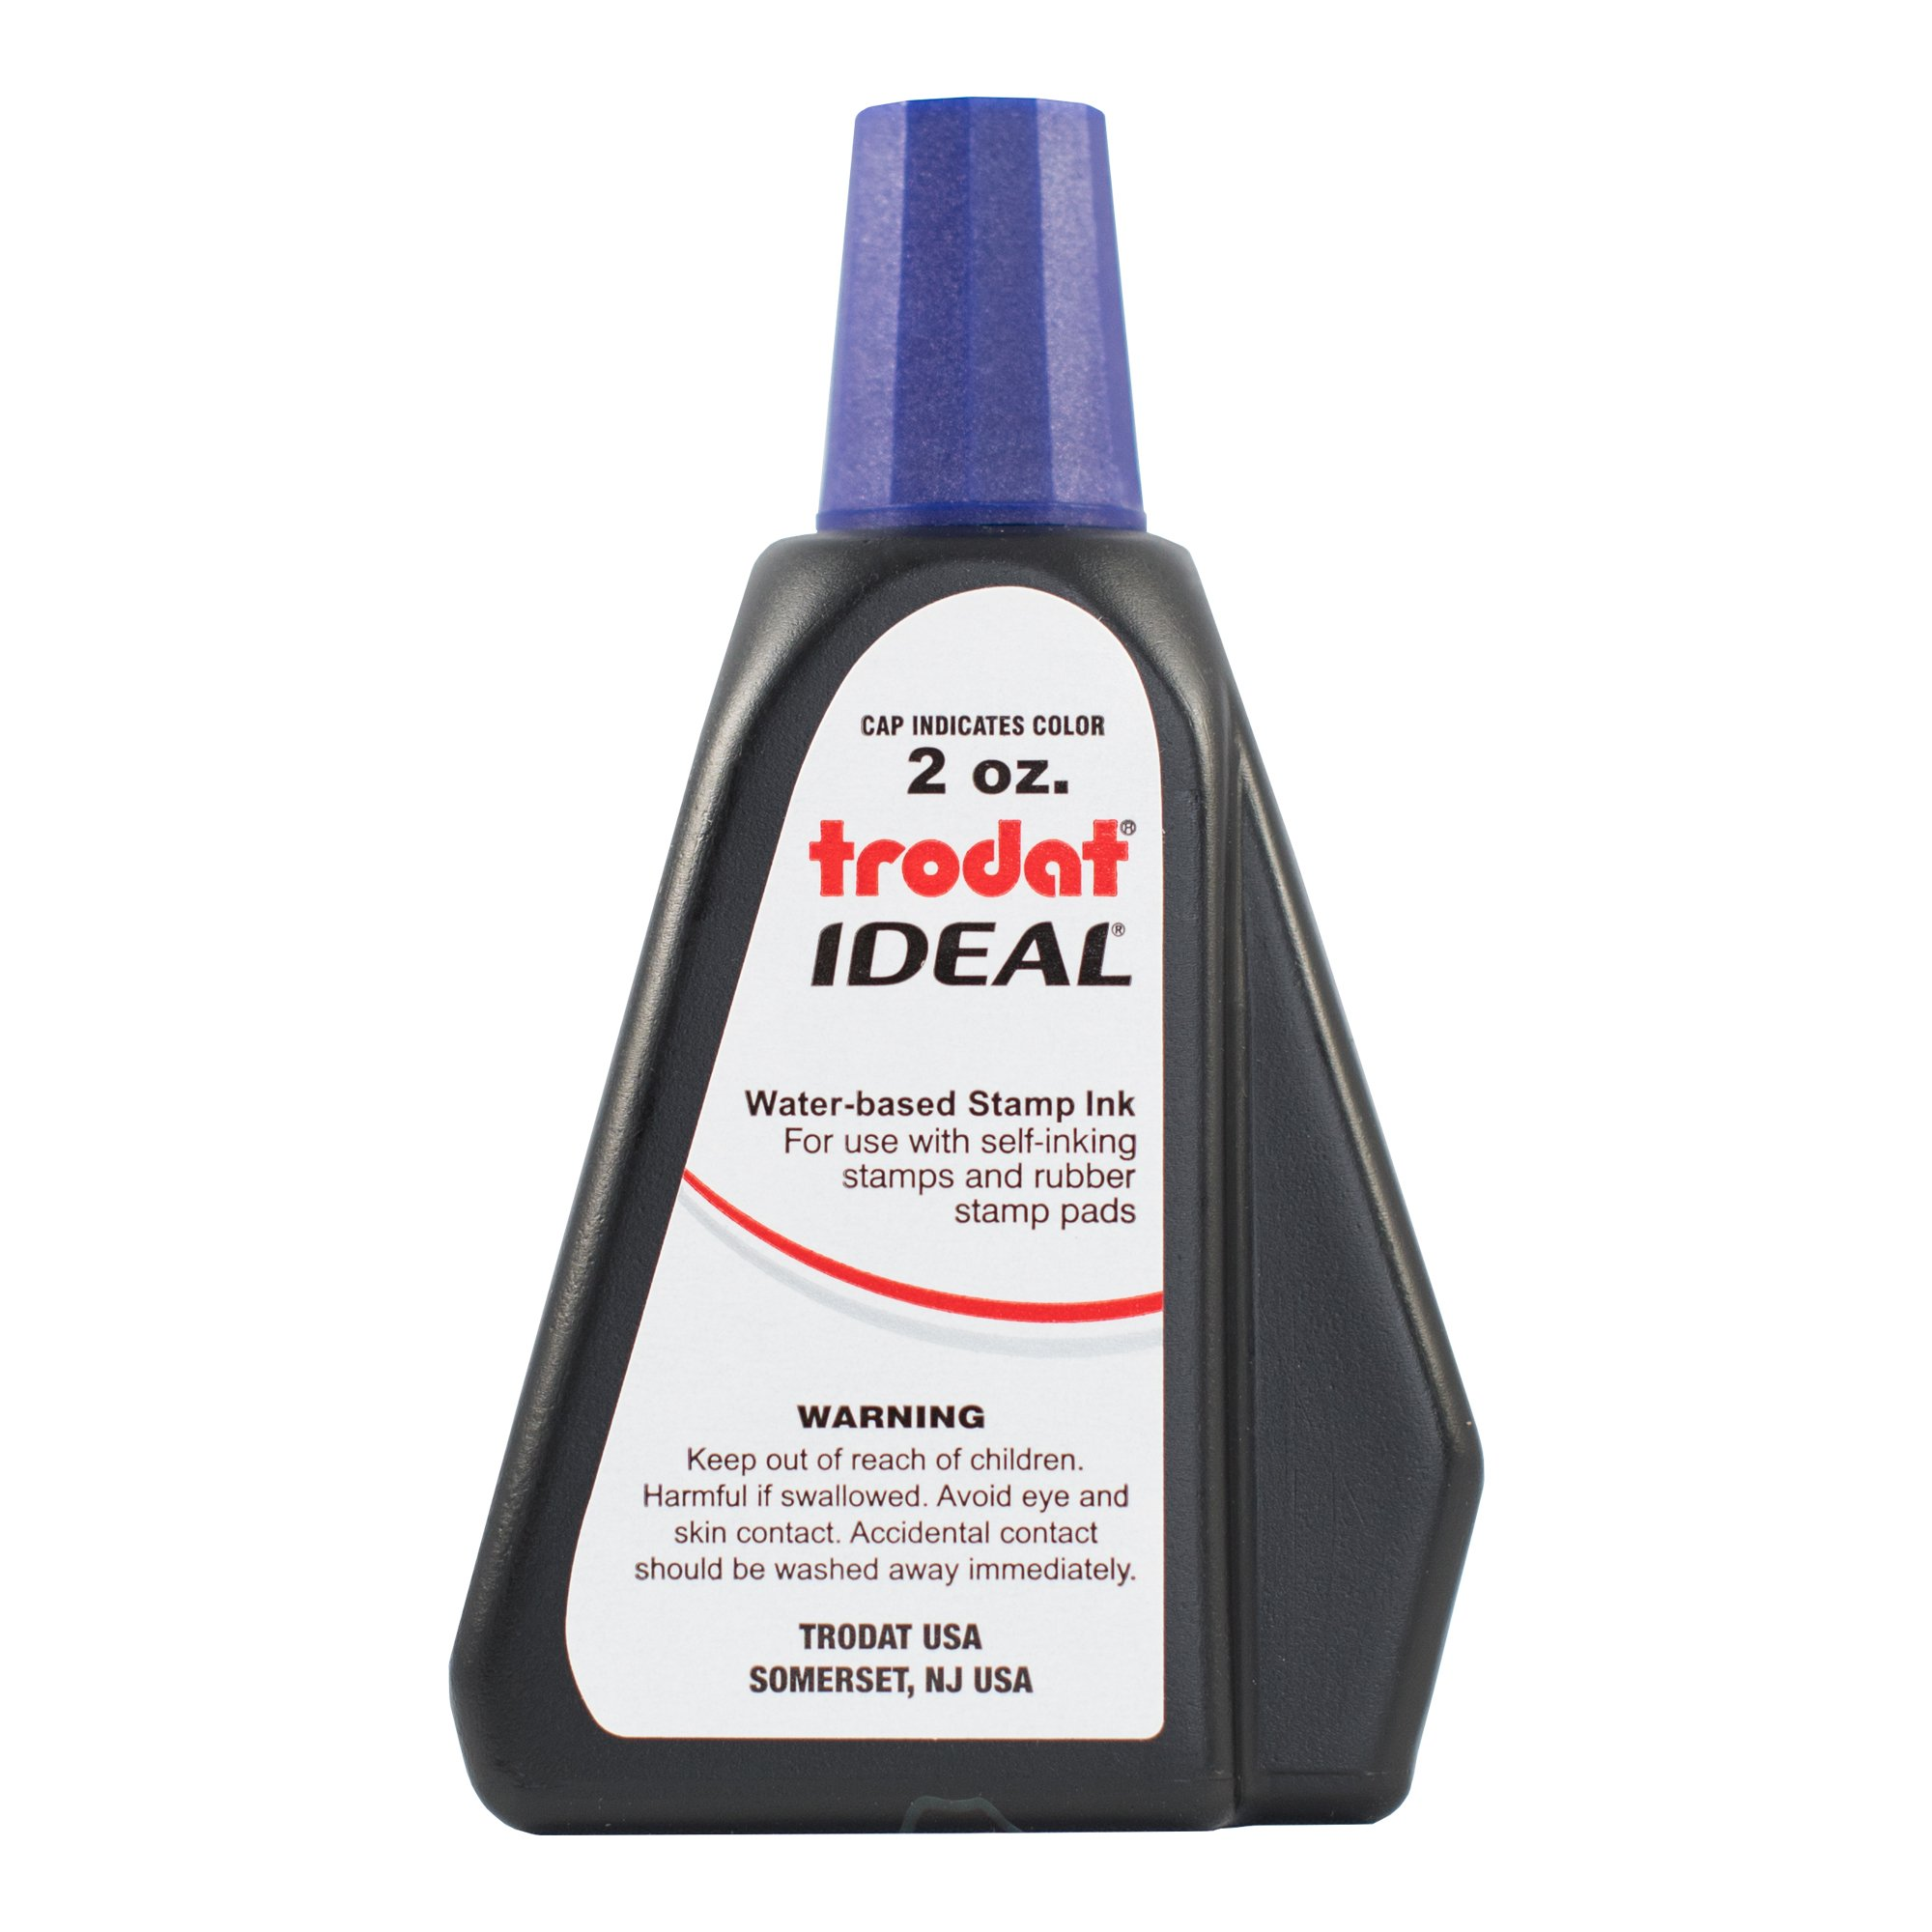 Trodat 53217 Ideal Premium Replacement Ink for Use with Most Self Inking and Rubber Stamp Pads, 2 oz, Violet